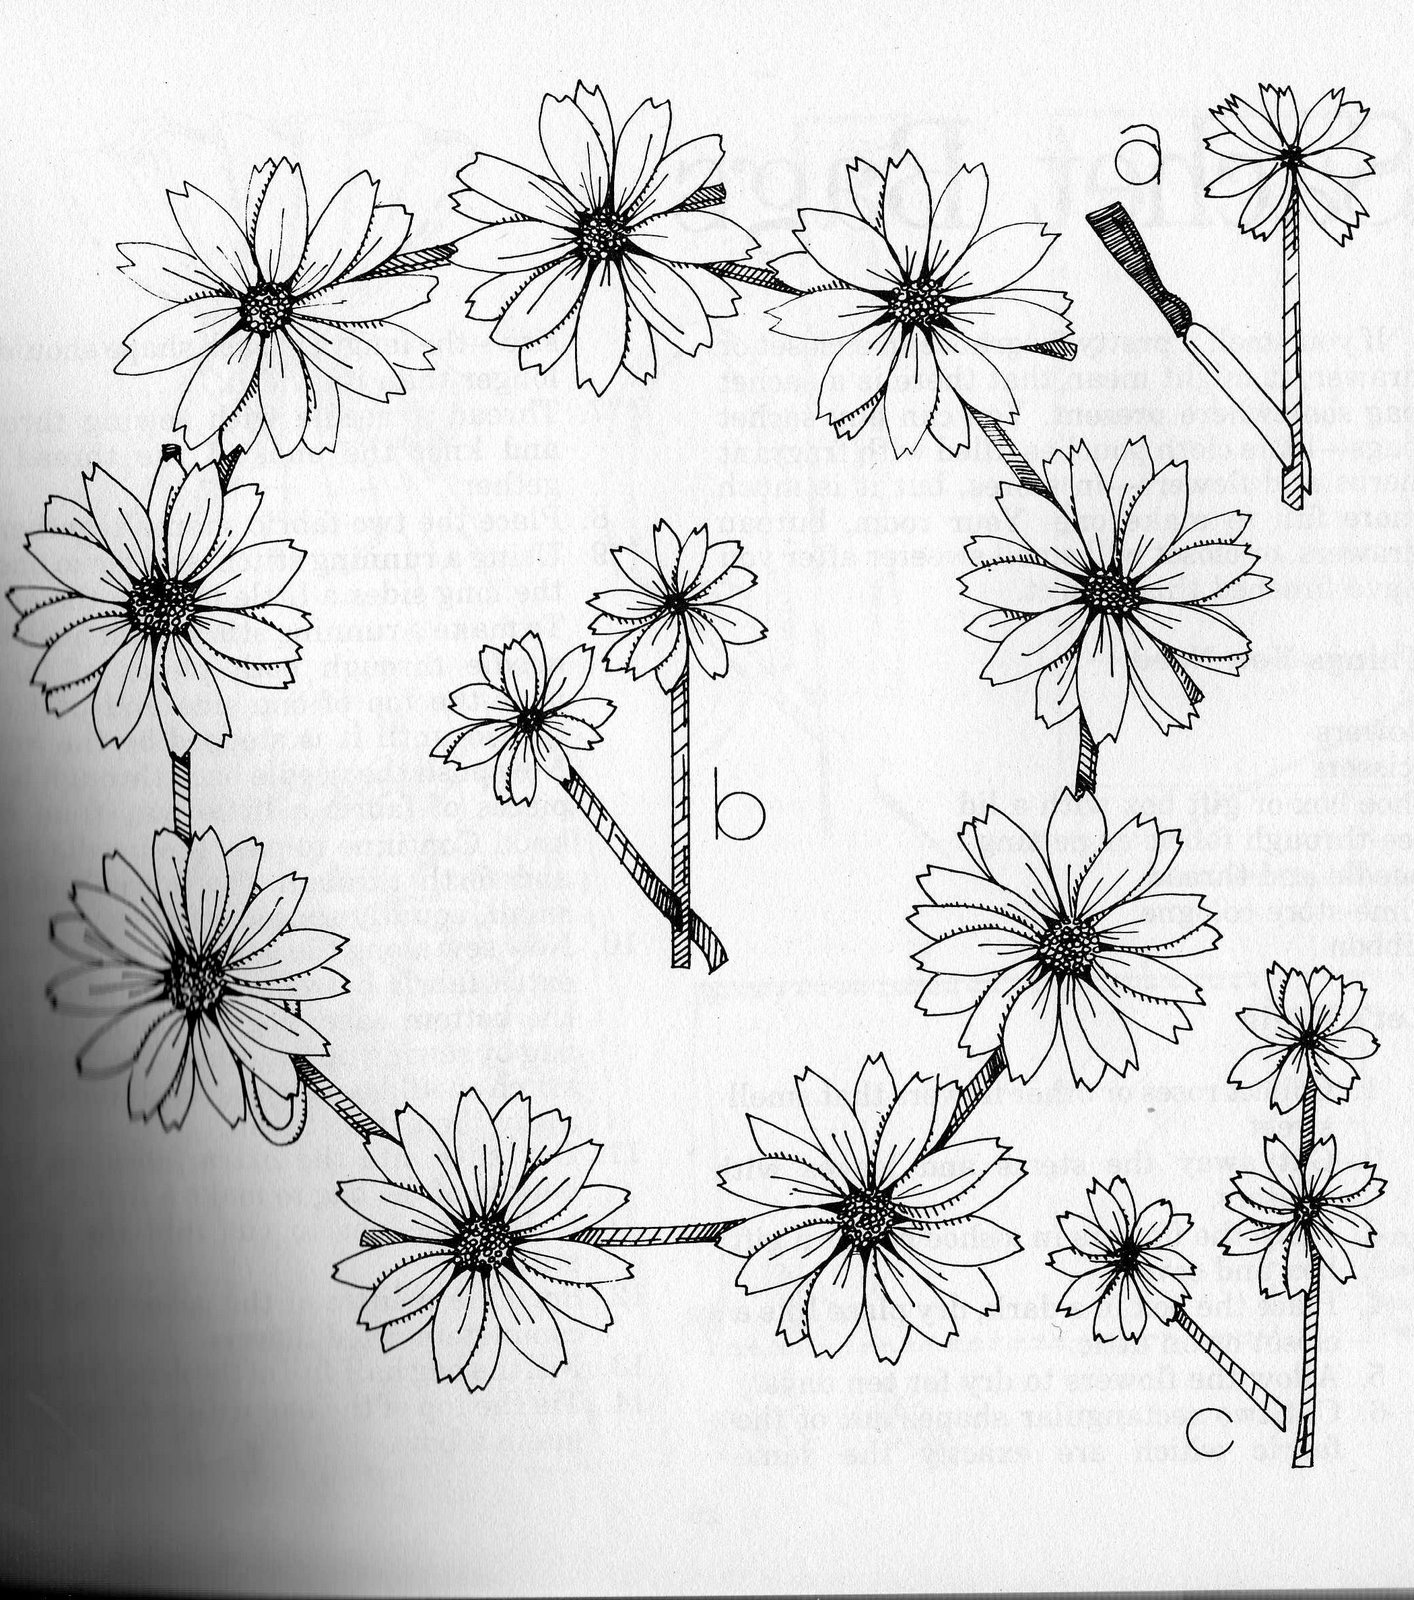 Daisy Chain Drawing At Getdrawings Com Free For Personal Use Daisy